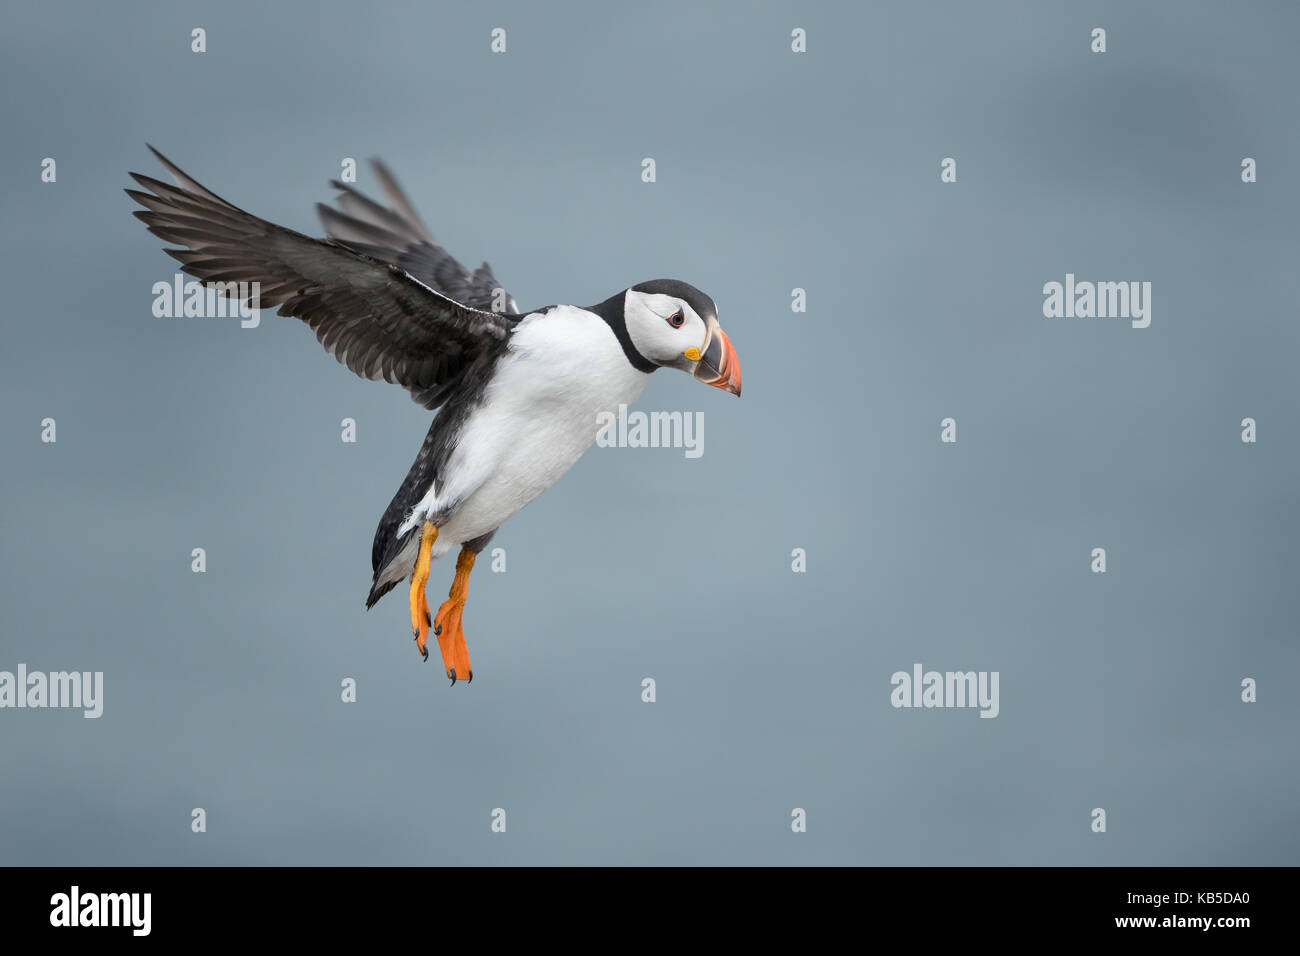 Puffin with cloudy sky flying over Inner Farne, The Farne Islands, Northumberland, England, United Kingdom, Europe Stock Photo